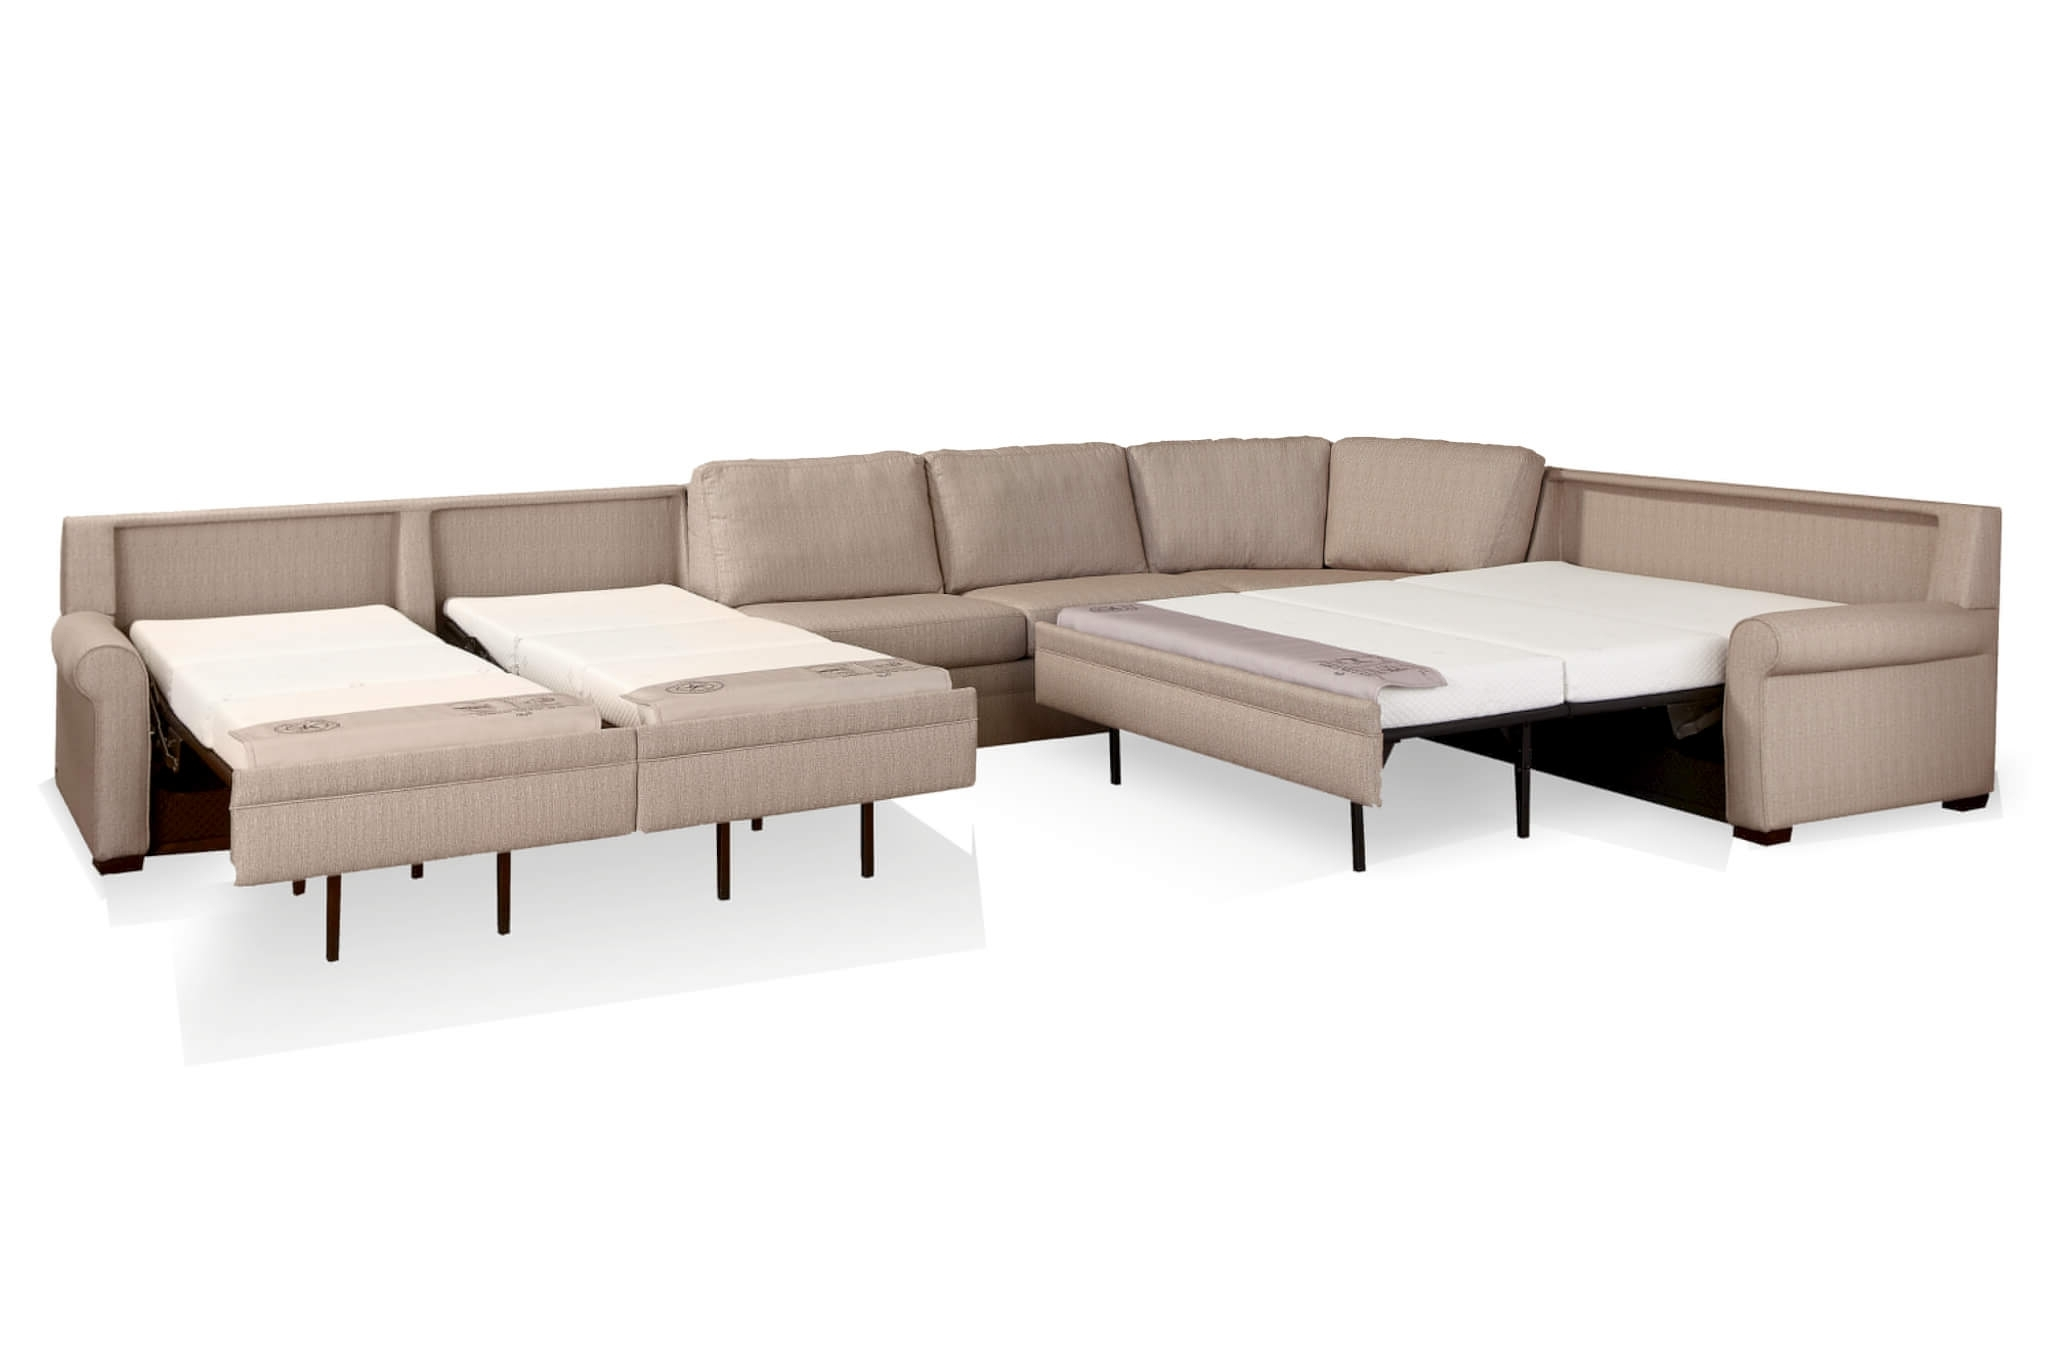 Idmi Regarding Latest Panama City Fl Sectional Sofas (Gallery 9 of 20)